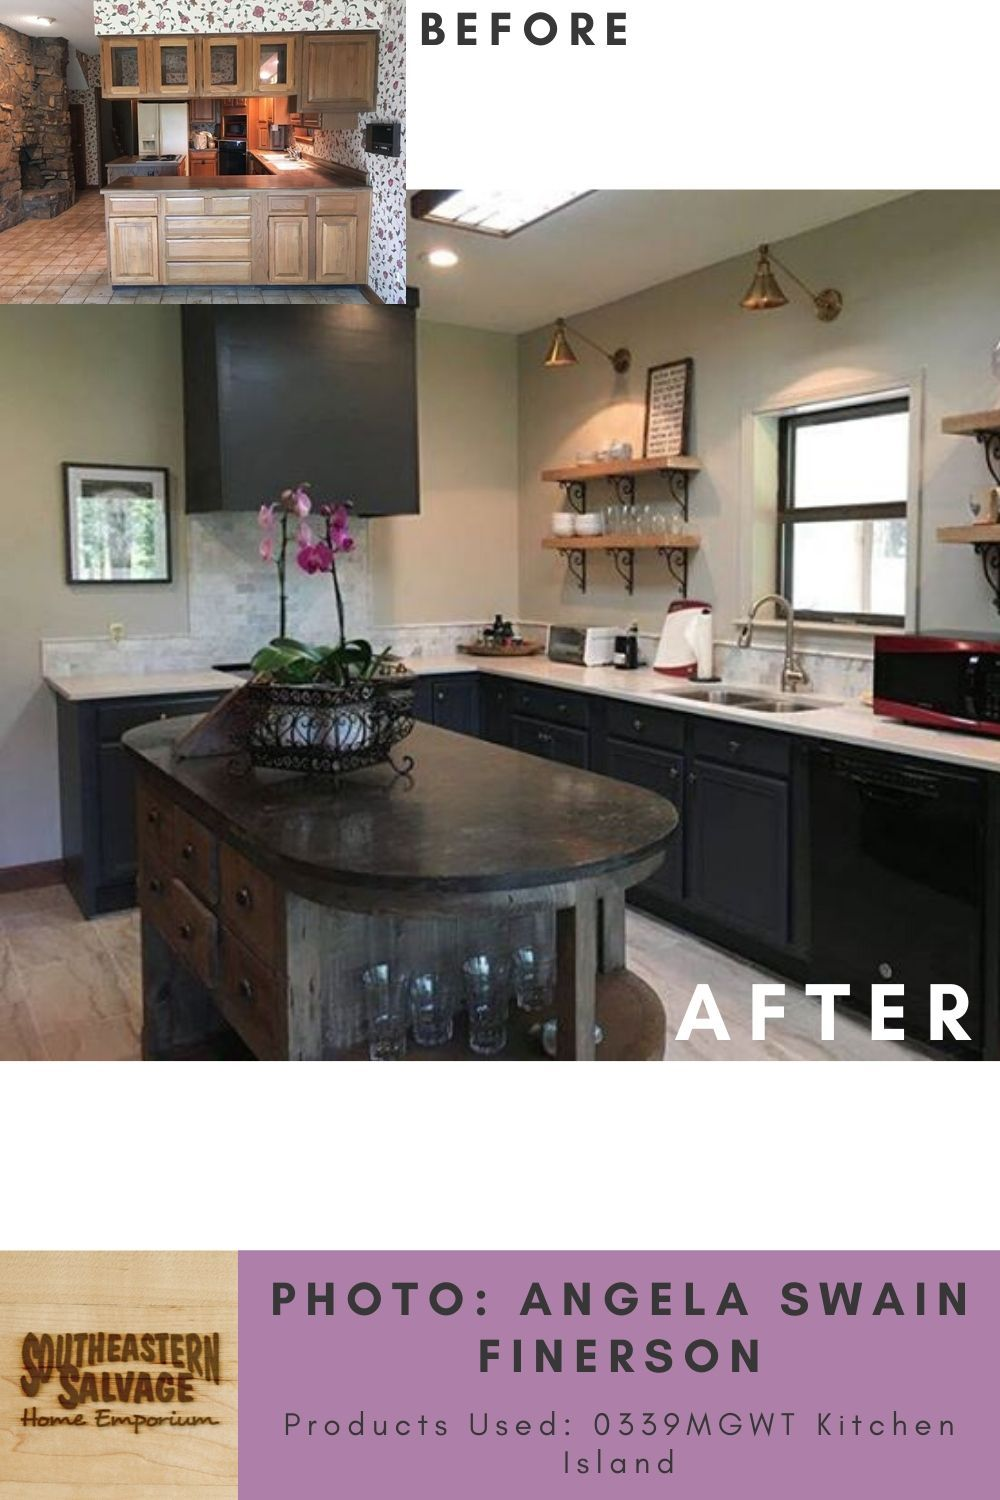 Kitchen By Angela Swain Finerson Reclaimed Wood Kitchen Island Southeastern Salvage In 2020 Reclaimed Wood Kitchen Island Wood Kitchen Island Wood Kitchen